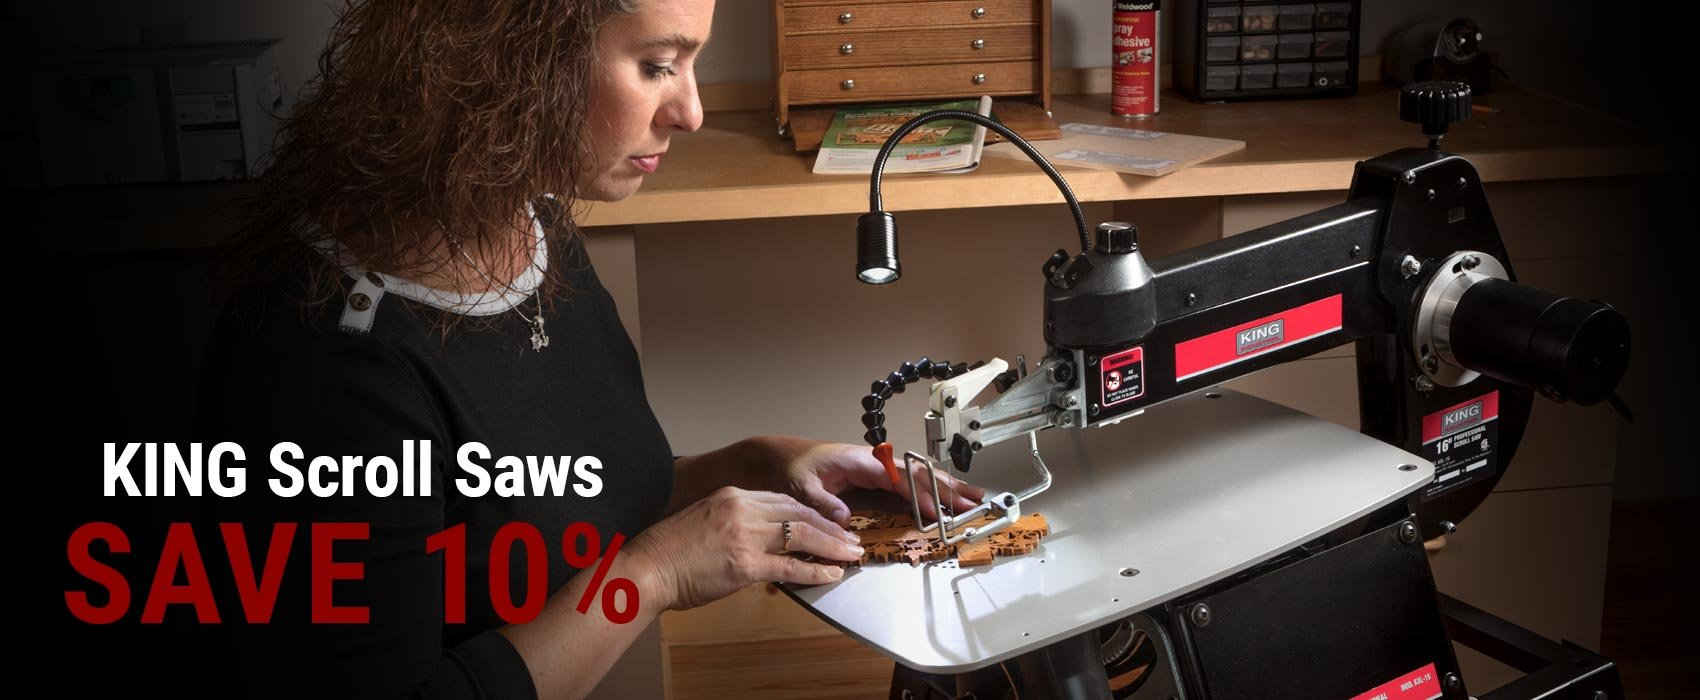 10% Off KING Scroll Saws for a Limited Time